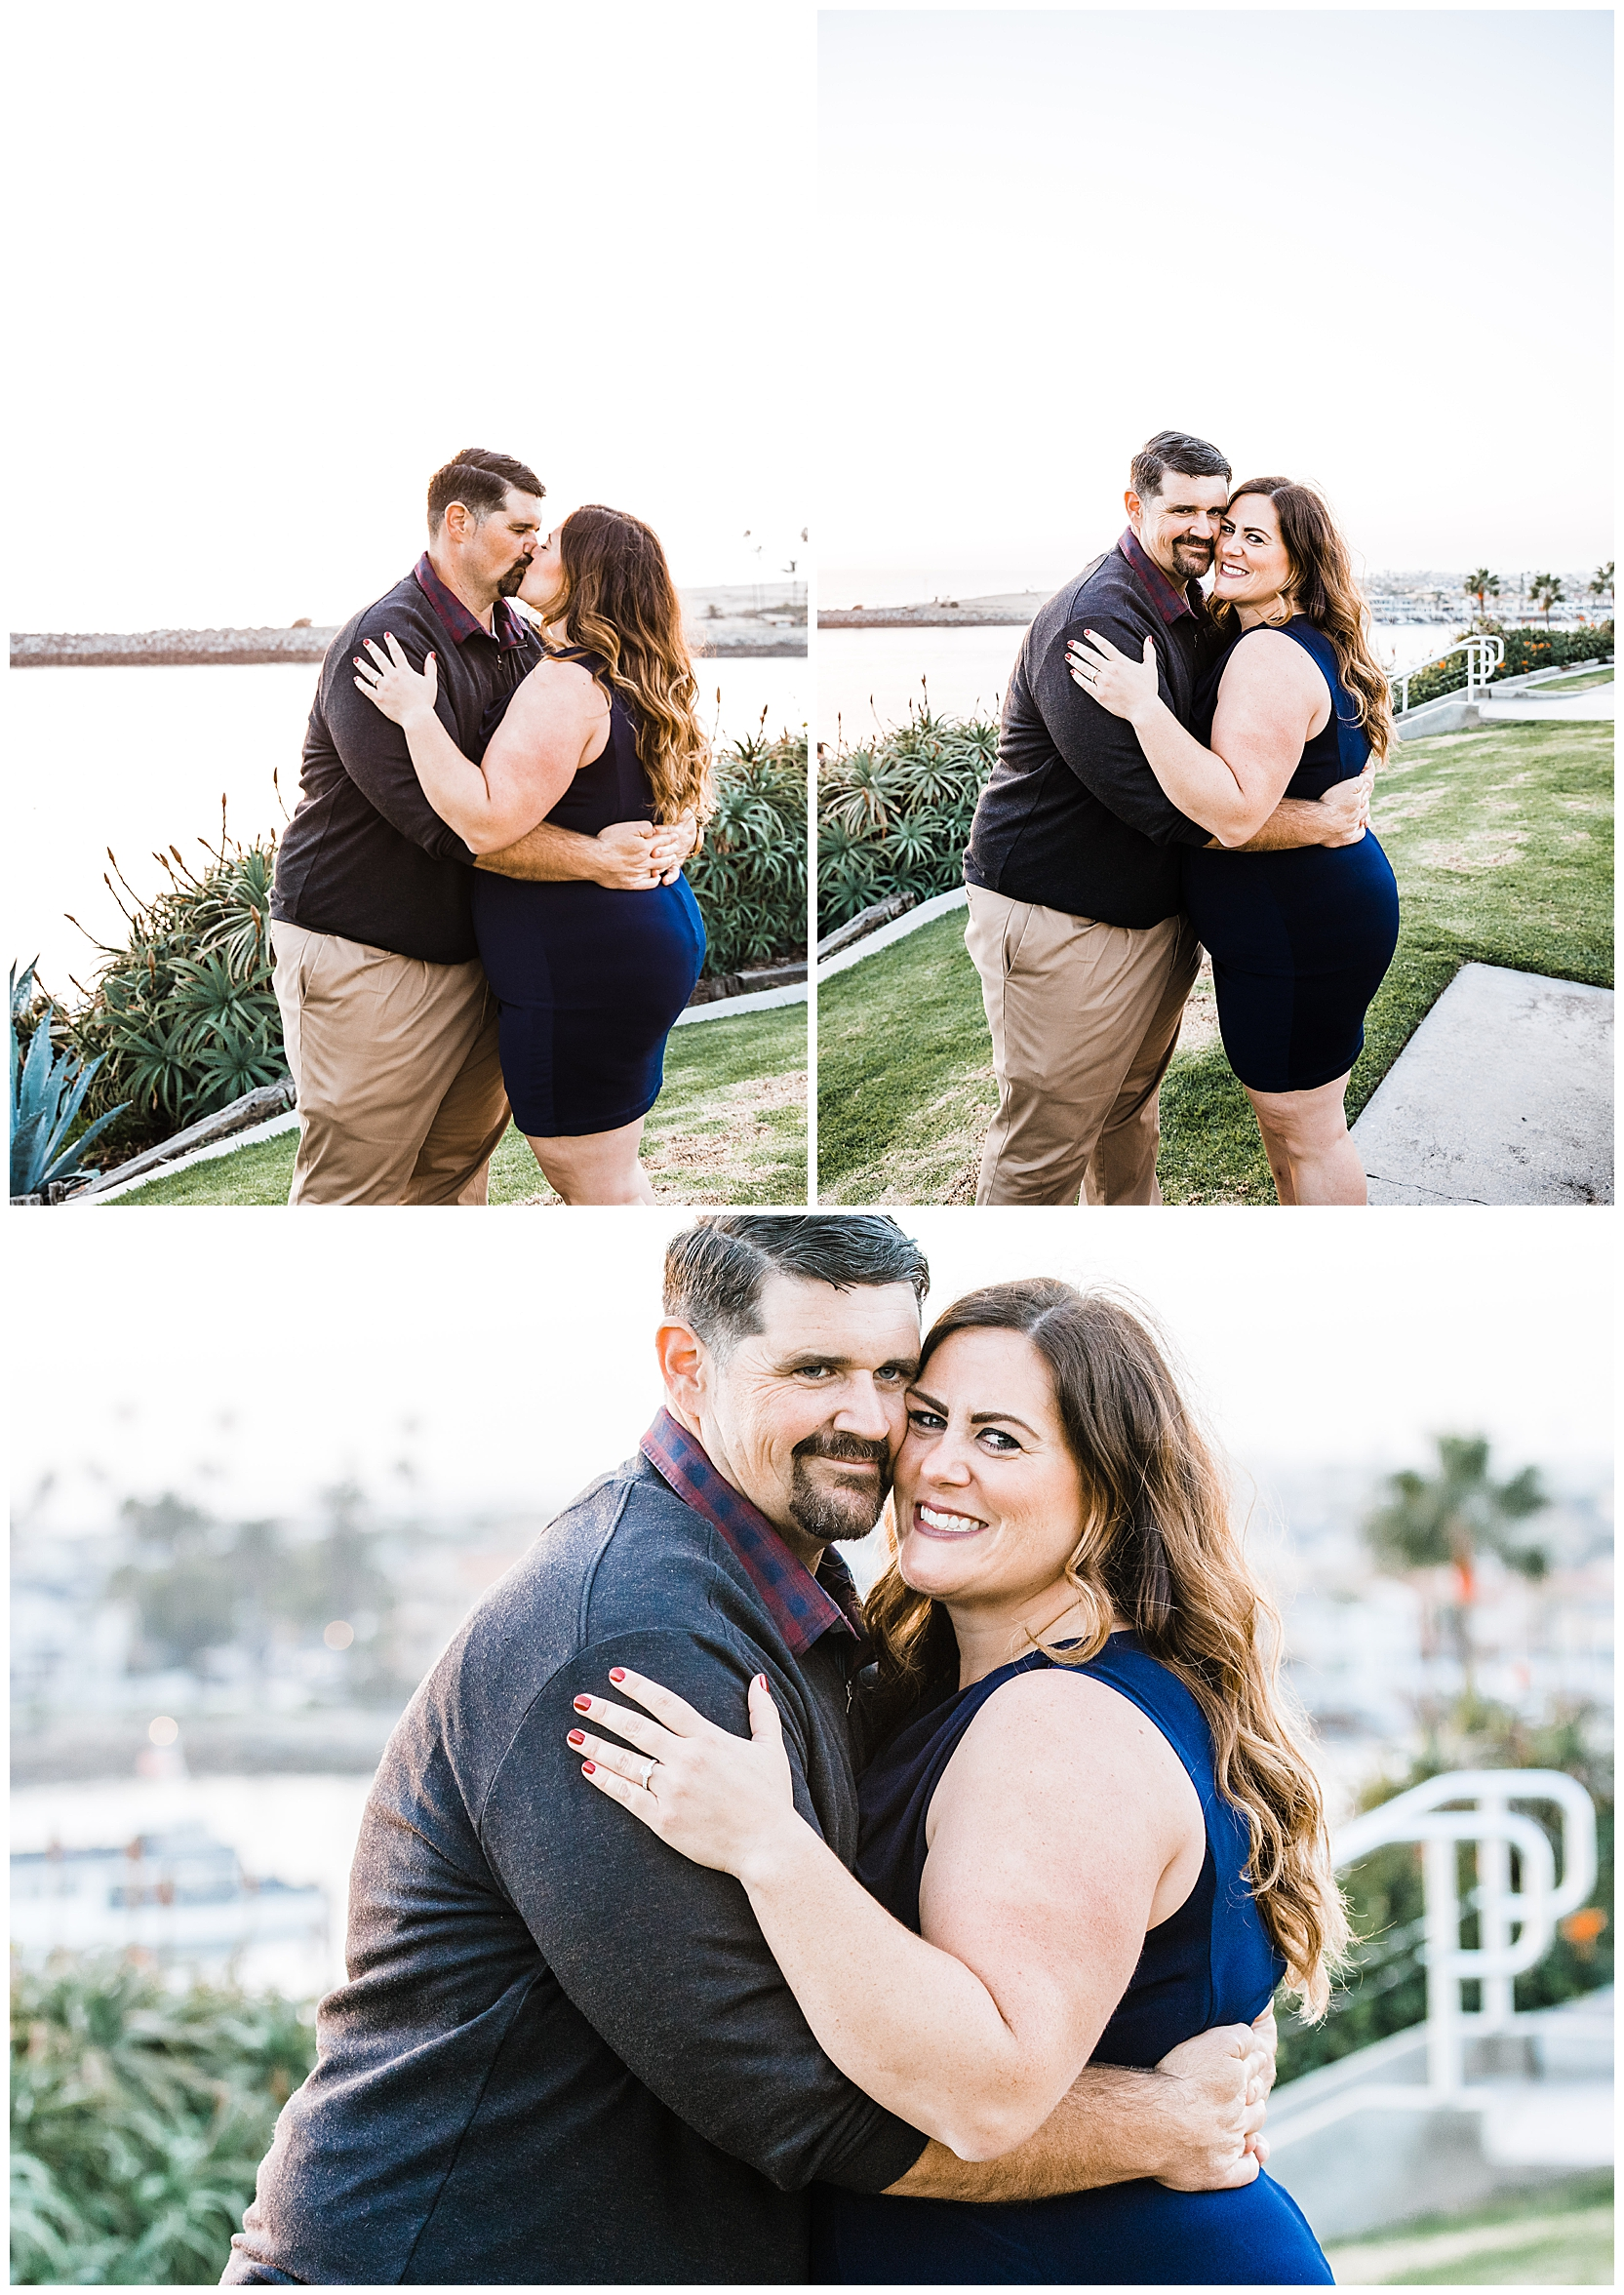 jessicafredericks_huntingtonbeach_proposal_sunset_engagement_0028.jpg